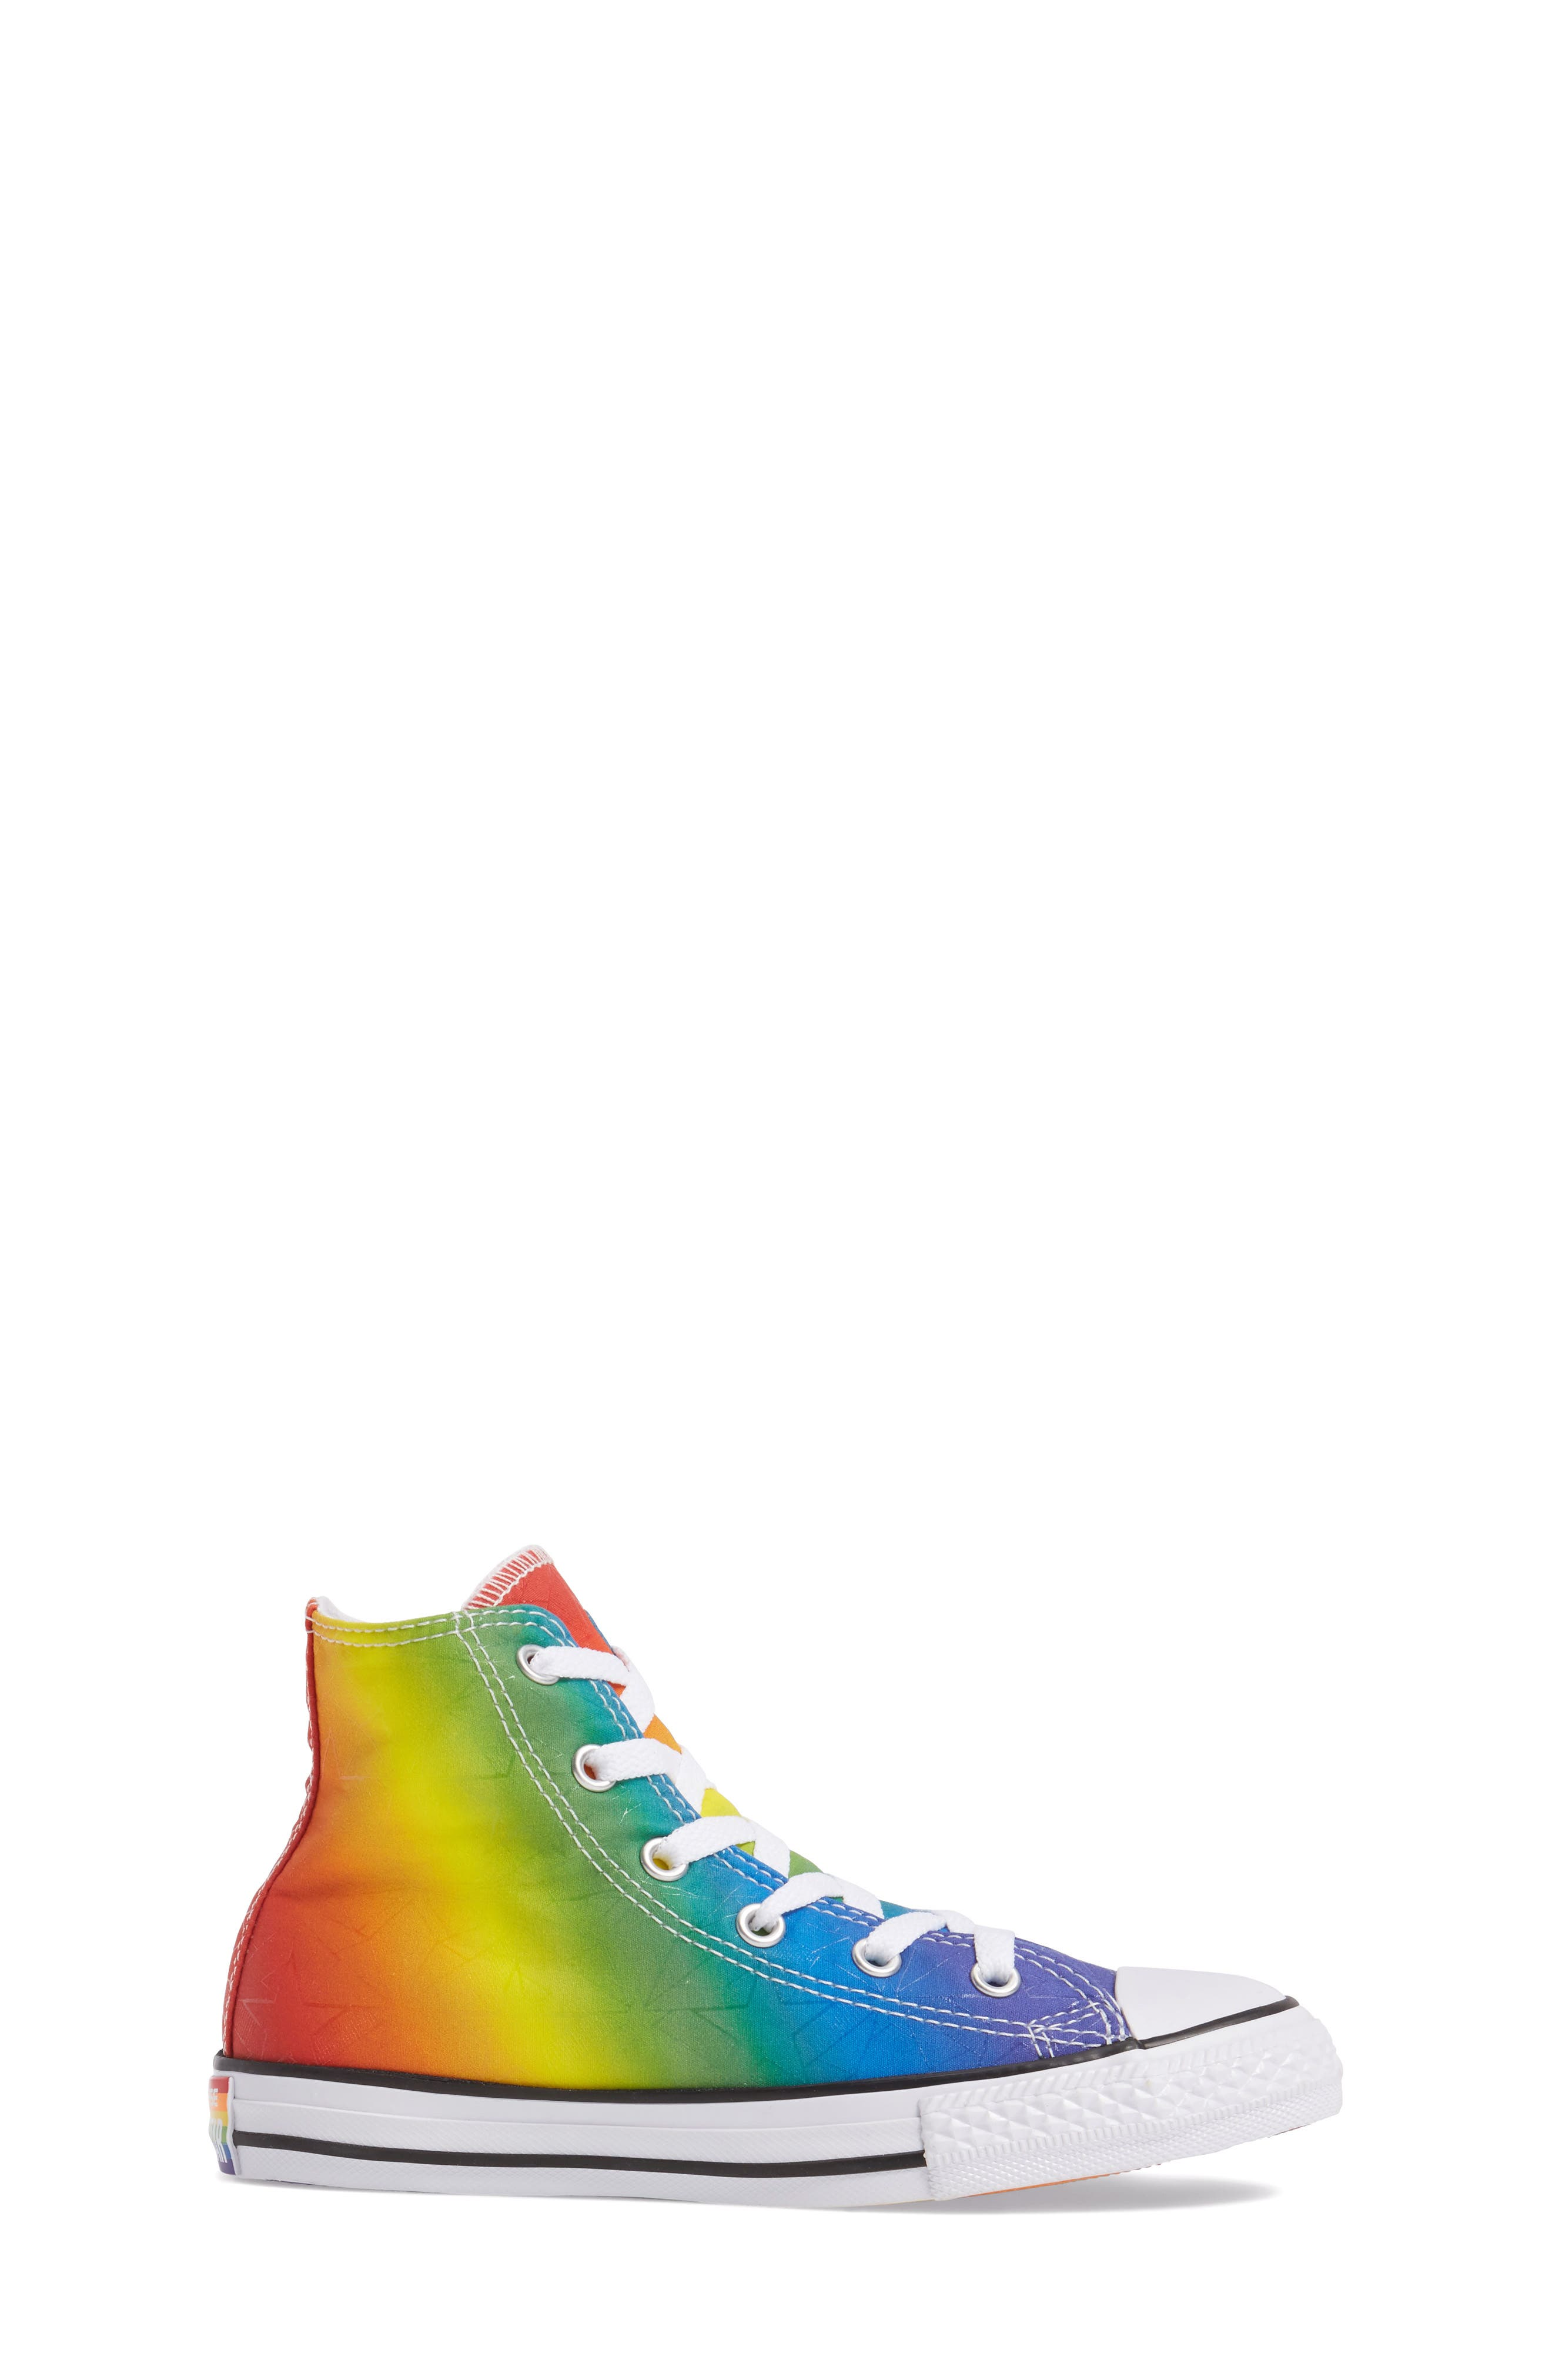 Chuck Taylor<sup>®</sup> All Star<sup>®</sup> Pride High Top Sneaker,                             Alternate thumbnail 3, color,                             400